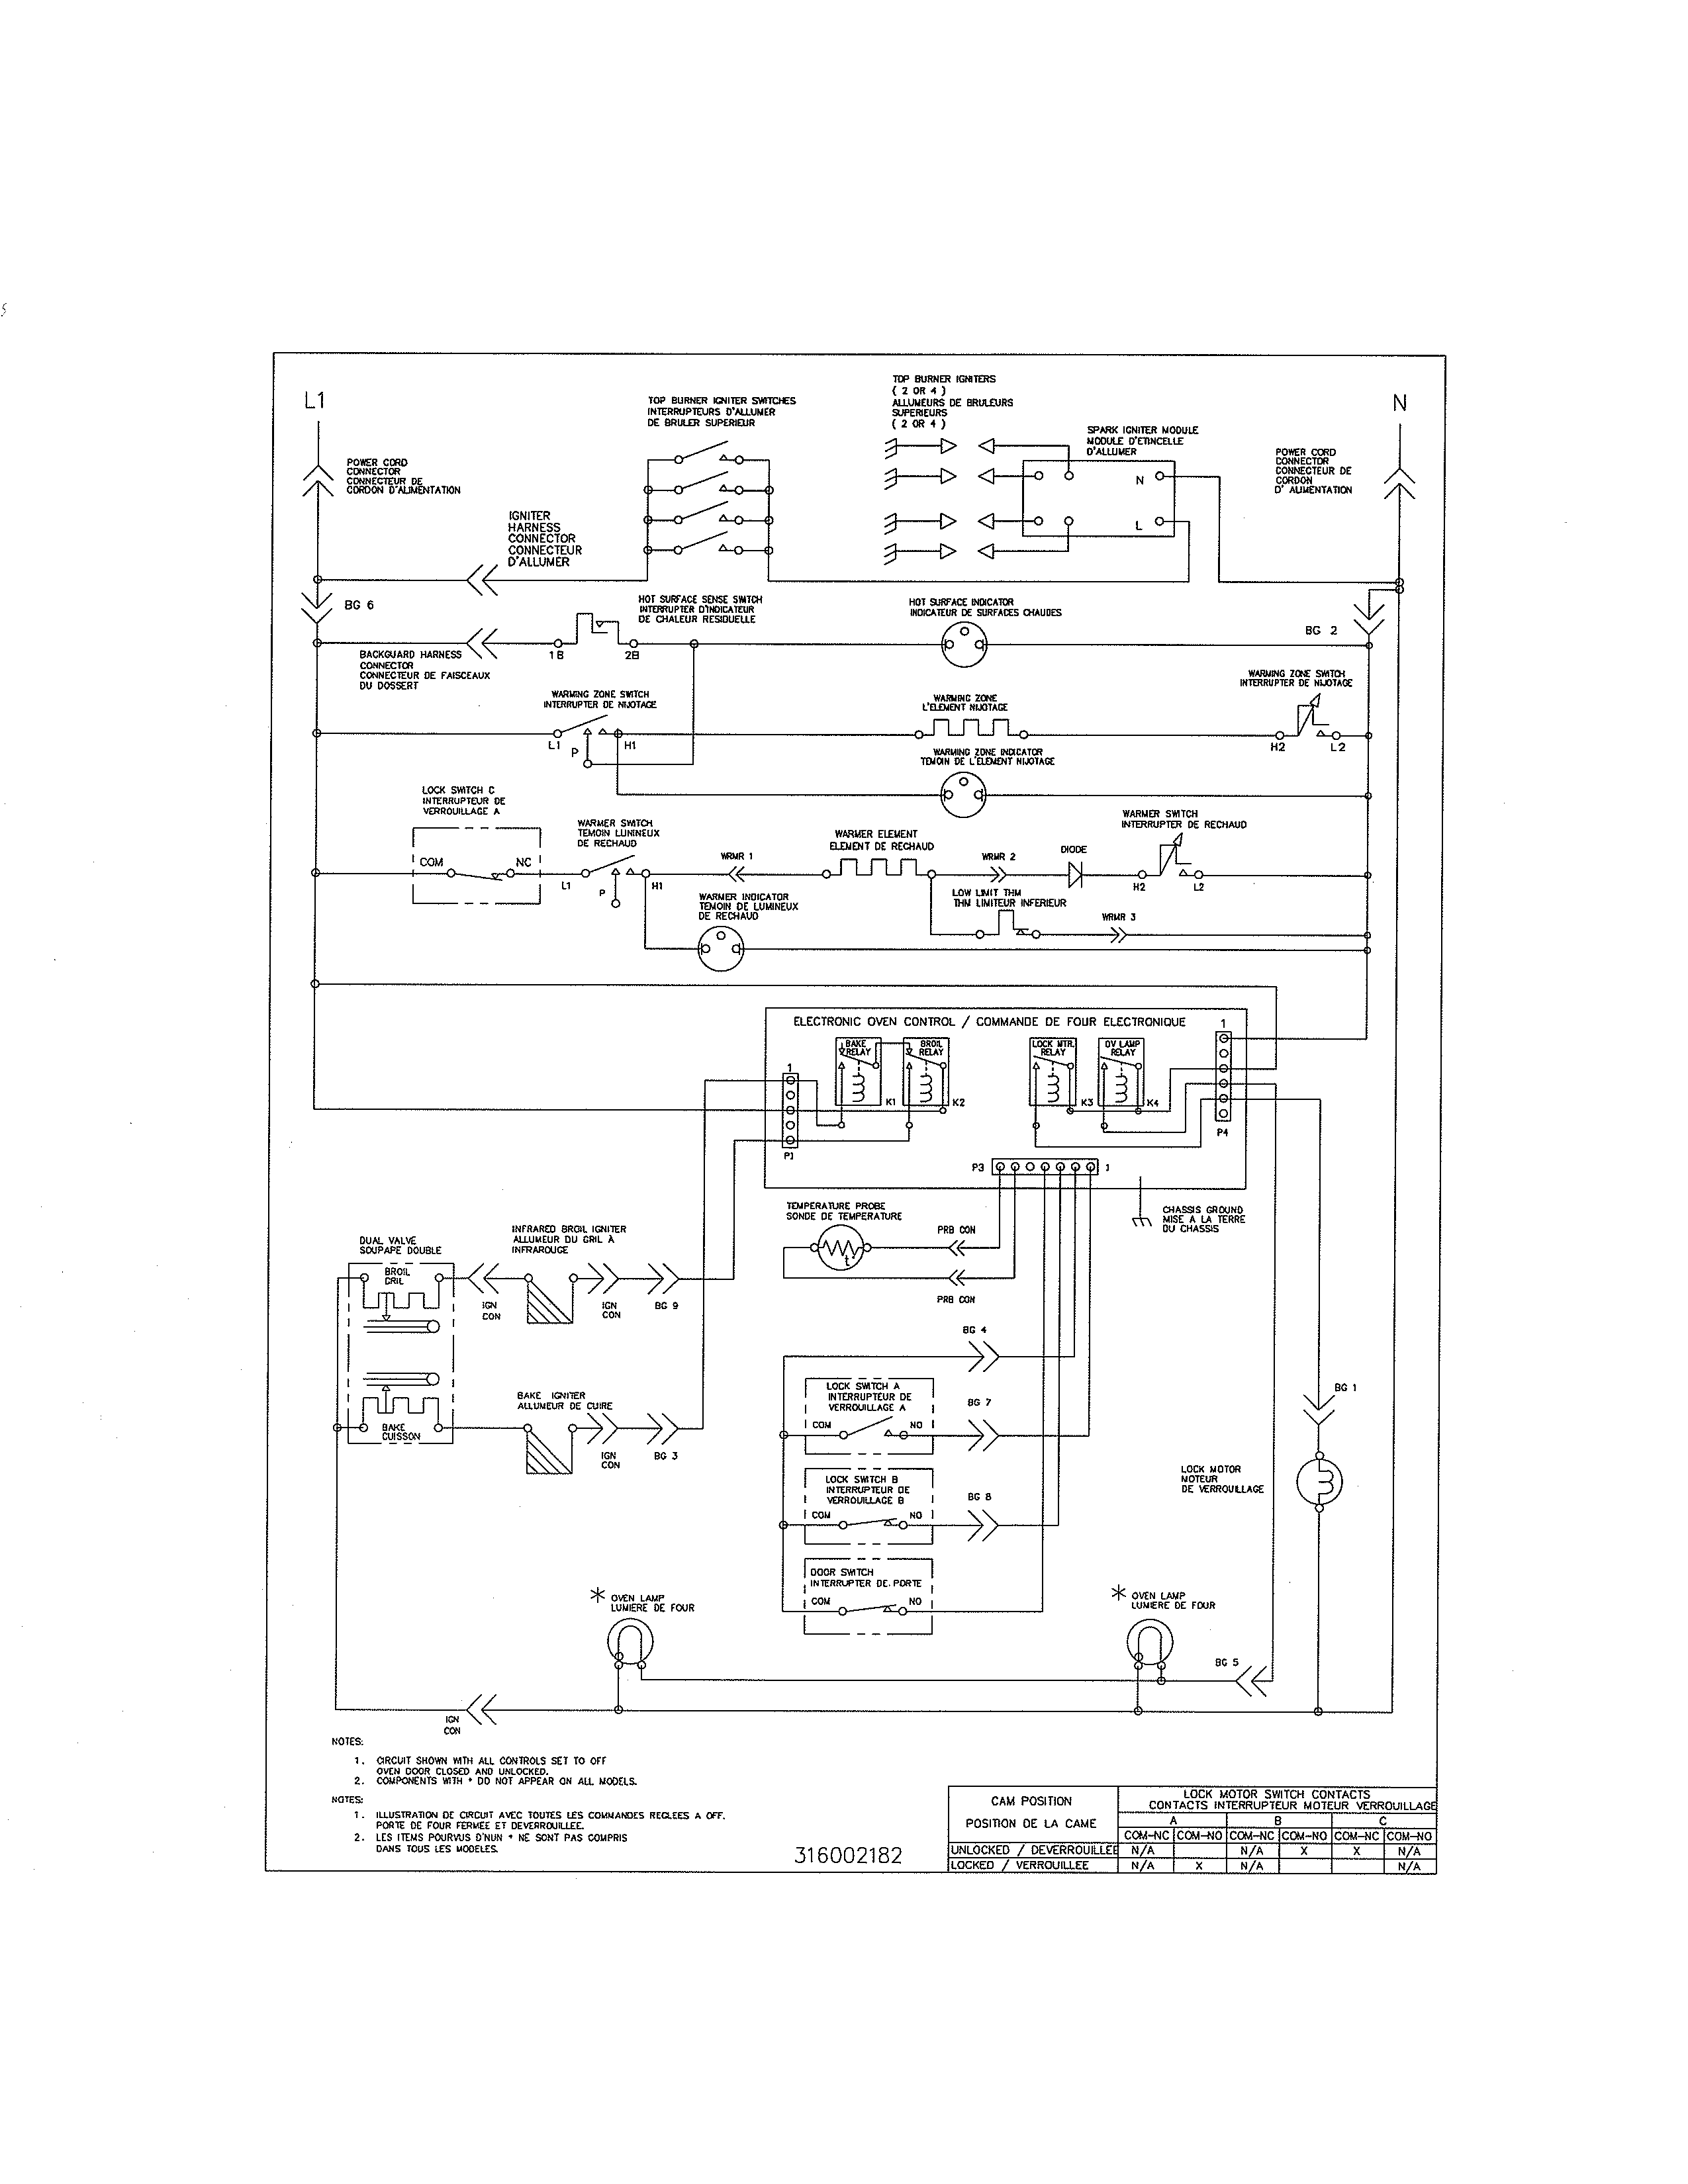 Kenmore Wall Oven Wiring Diagram Electrical Diagrams For Dacor Model 911 47704201 Product Electric Range Breaker